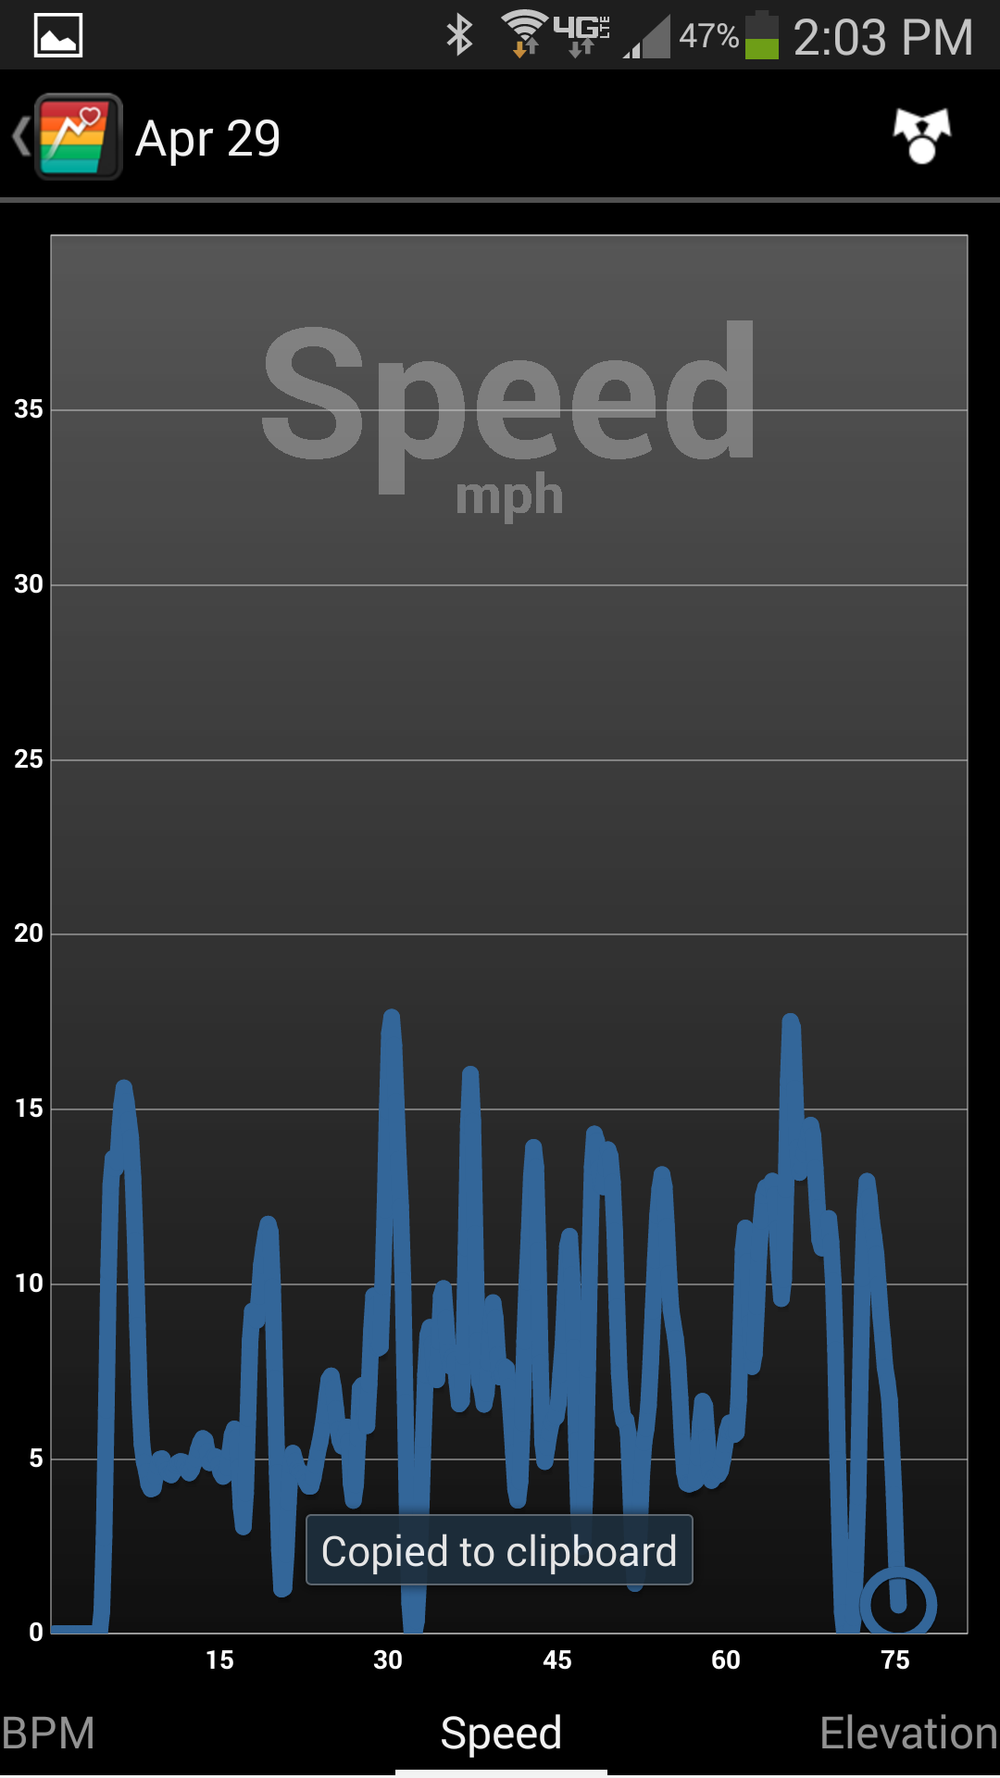 Summary of Speed changes during the mountain bike ride